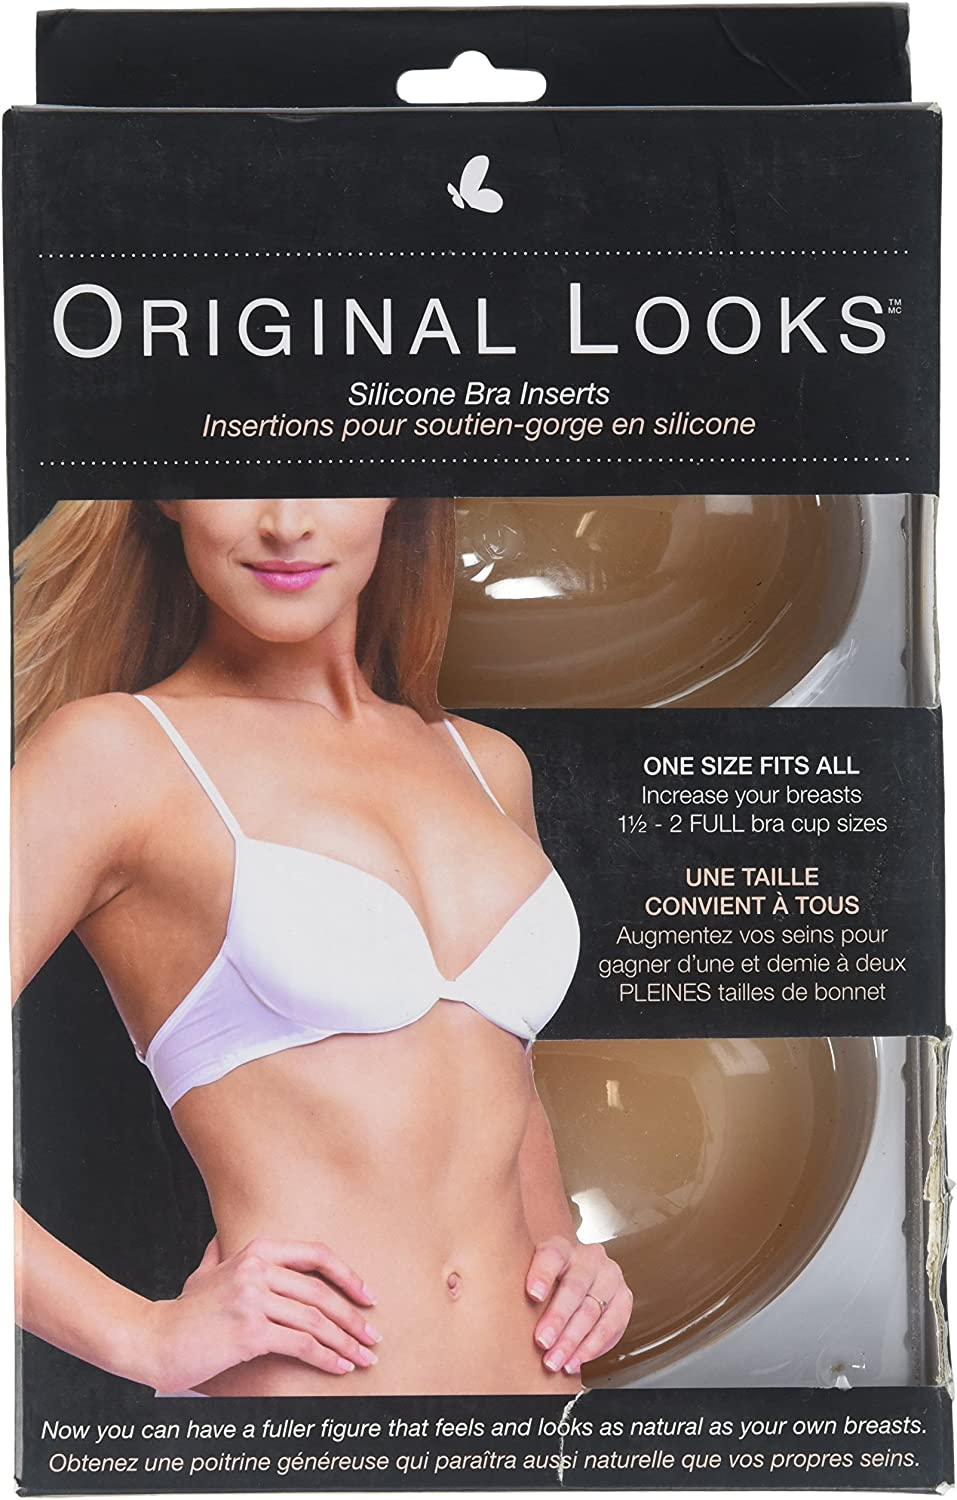 Fashion week How to inserts bra wear videos for lady